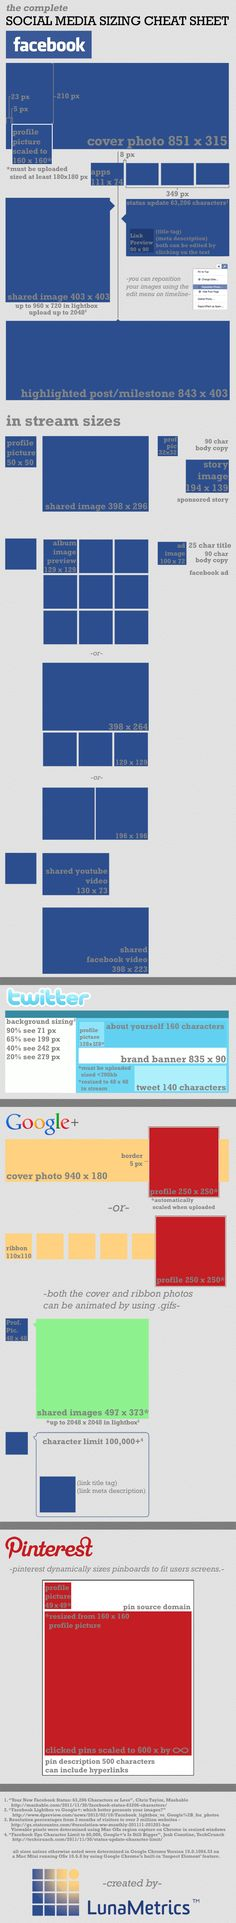 INFOGRAPHIC: The Complete Social Media Sizing Cheat Sheet